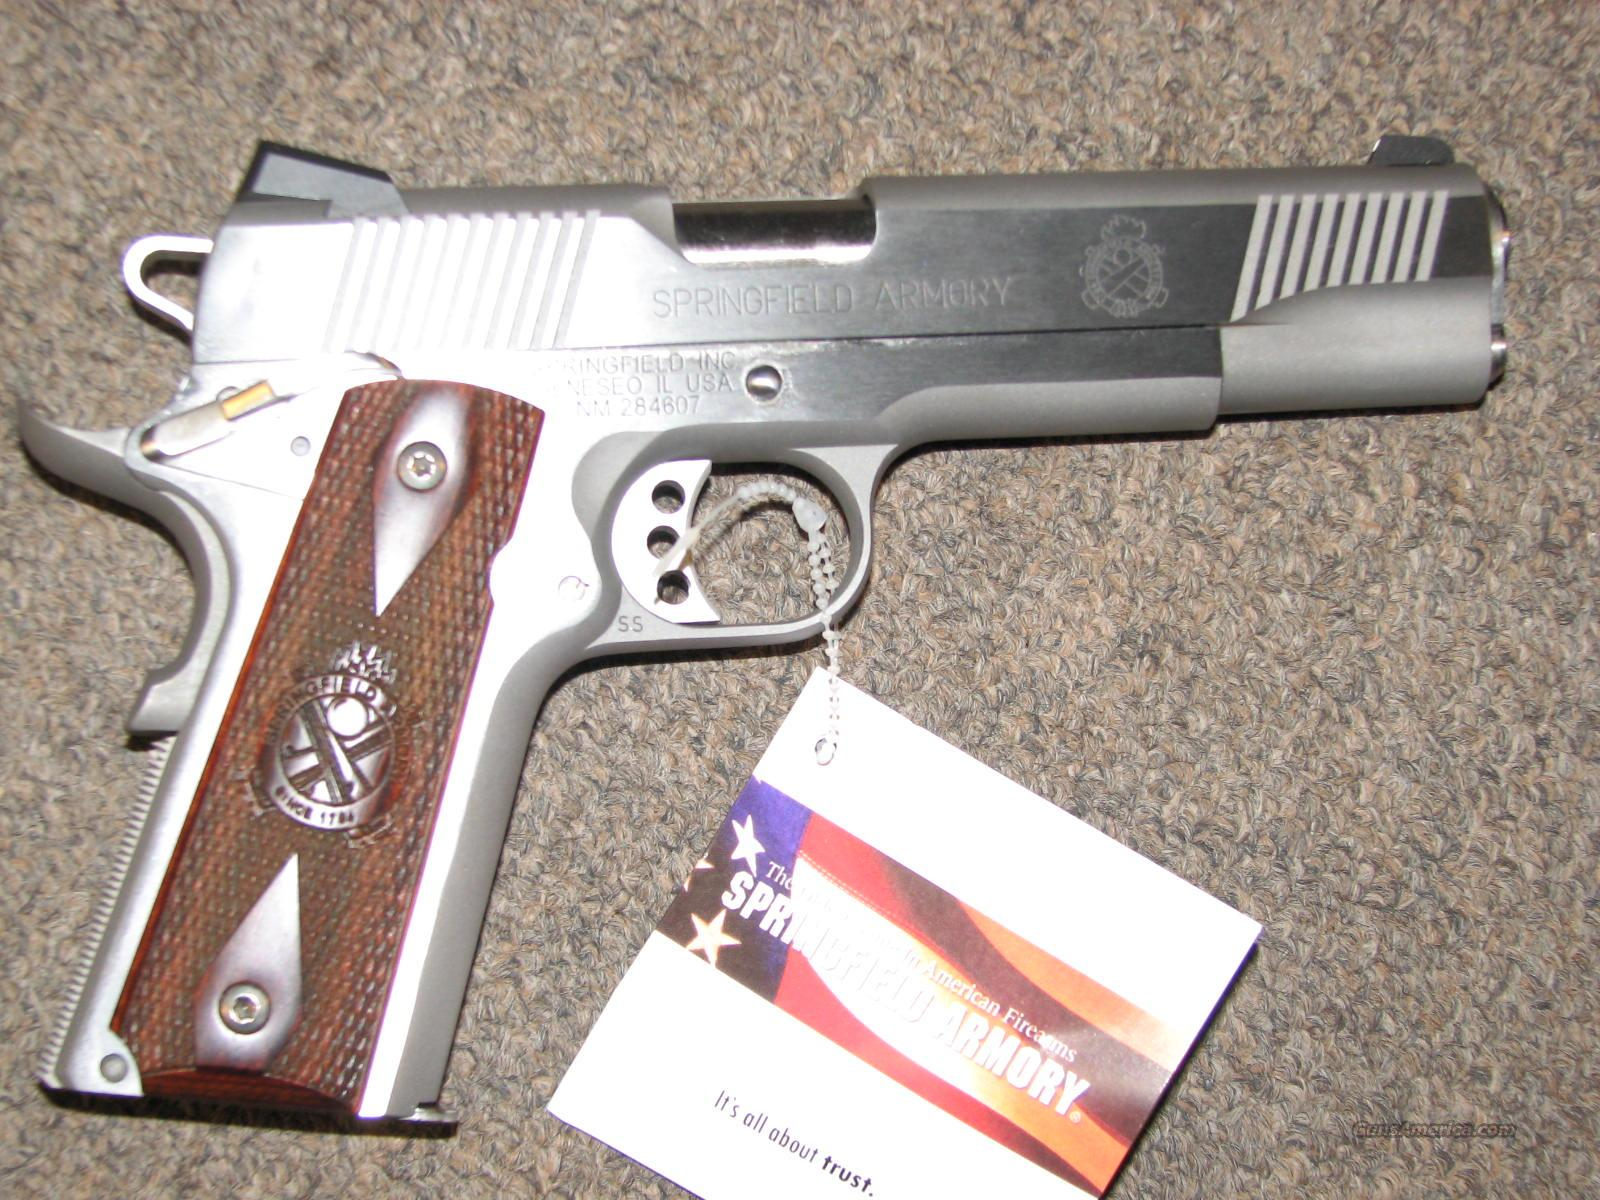 SPRINGFIELD 1911-A1 LOADED STAINLESS .45 ACP - NEW!  Guns > Pistols > Springfield Armory Pistols > 1911 Type